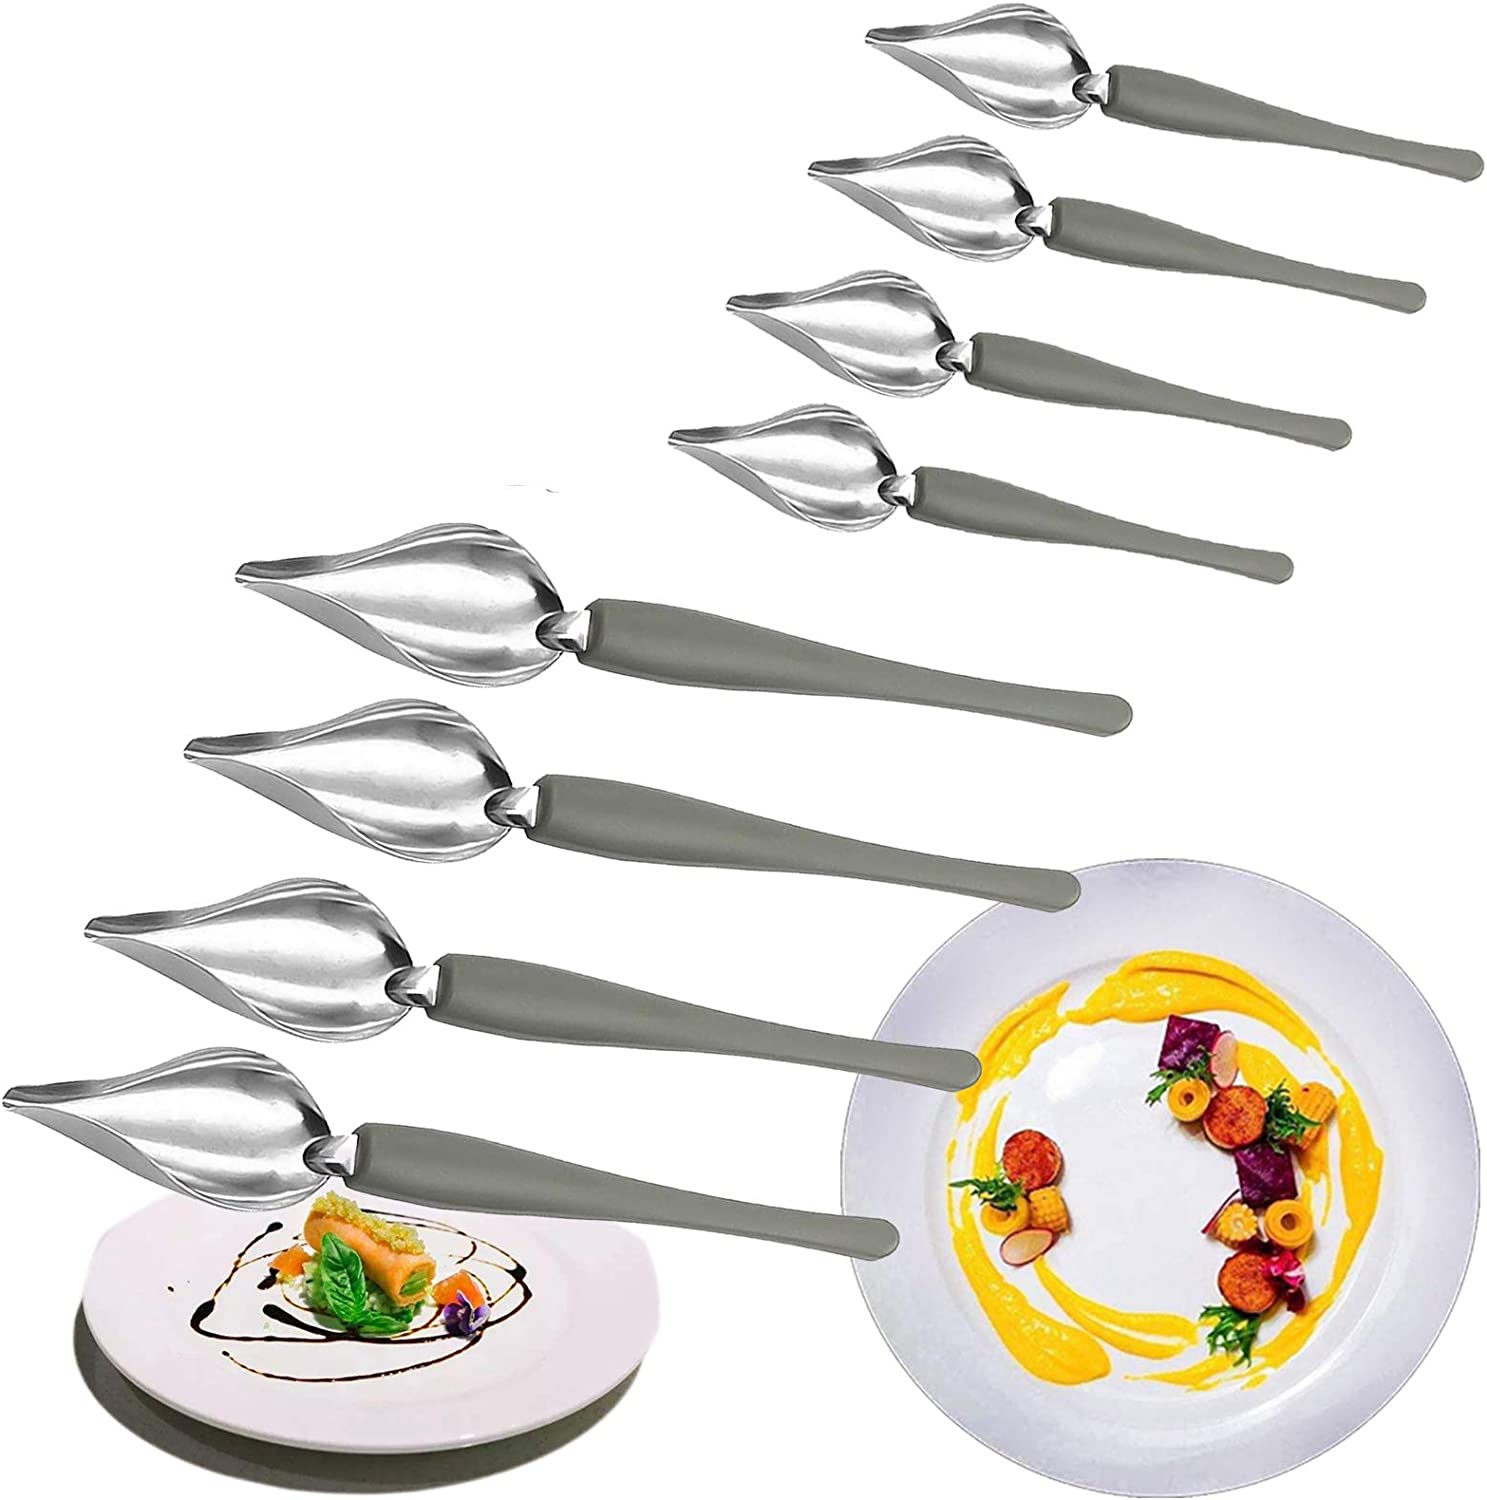 Chef Culinary Drawing Spoons Set, Stainless Steel Chef's Art Pencil for Food Decoration, Plating Decorating Pencil Spoon for Decorative Plates, Cake, Coffee 8pcs